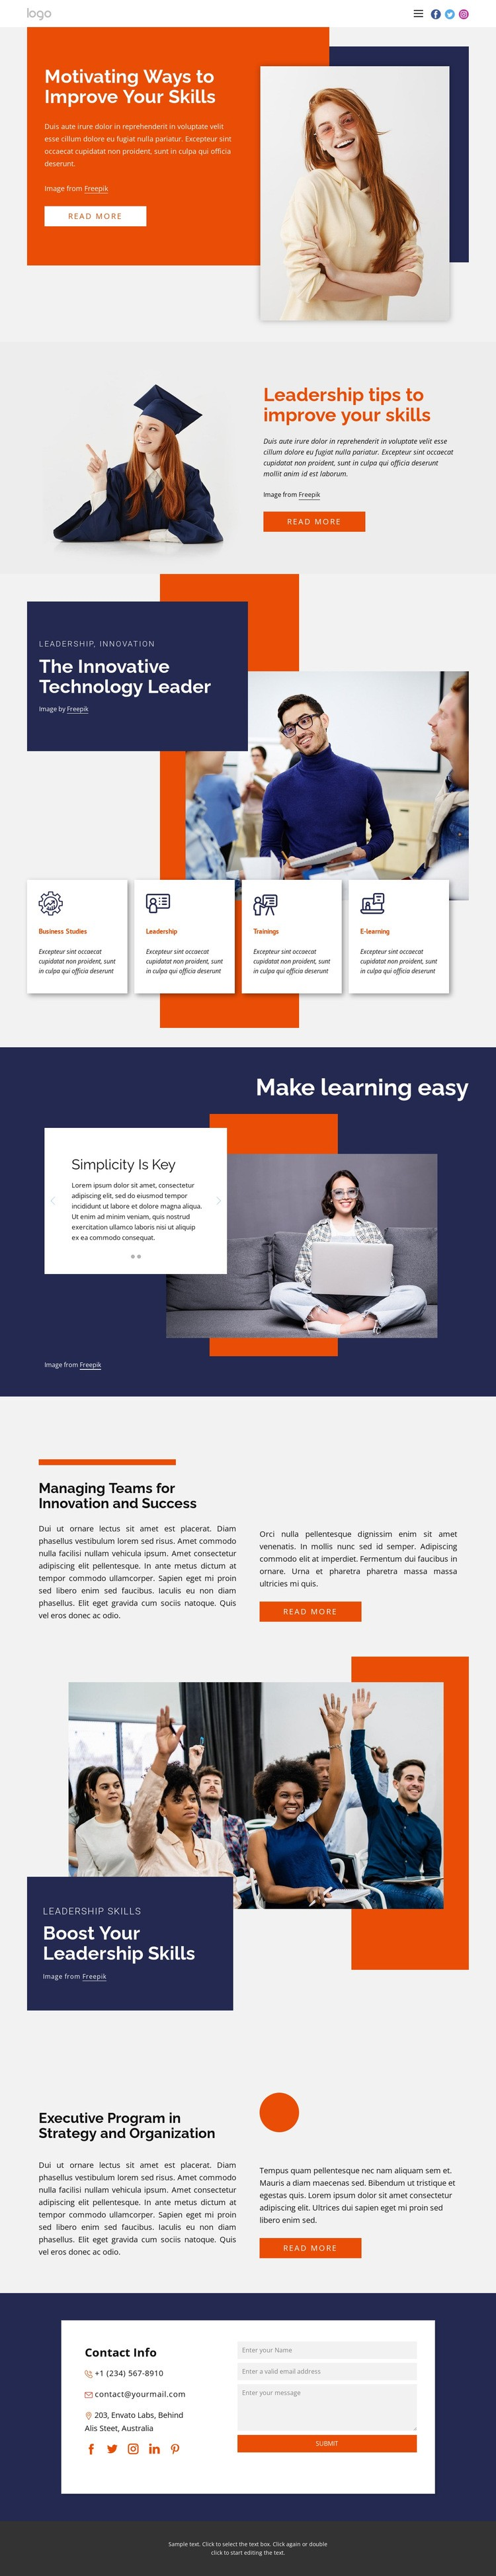 Drive your career forward Html Code Example